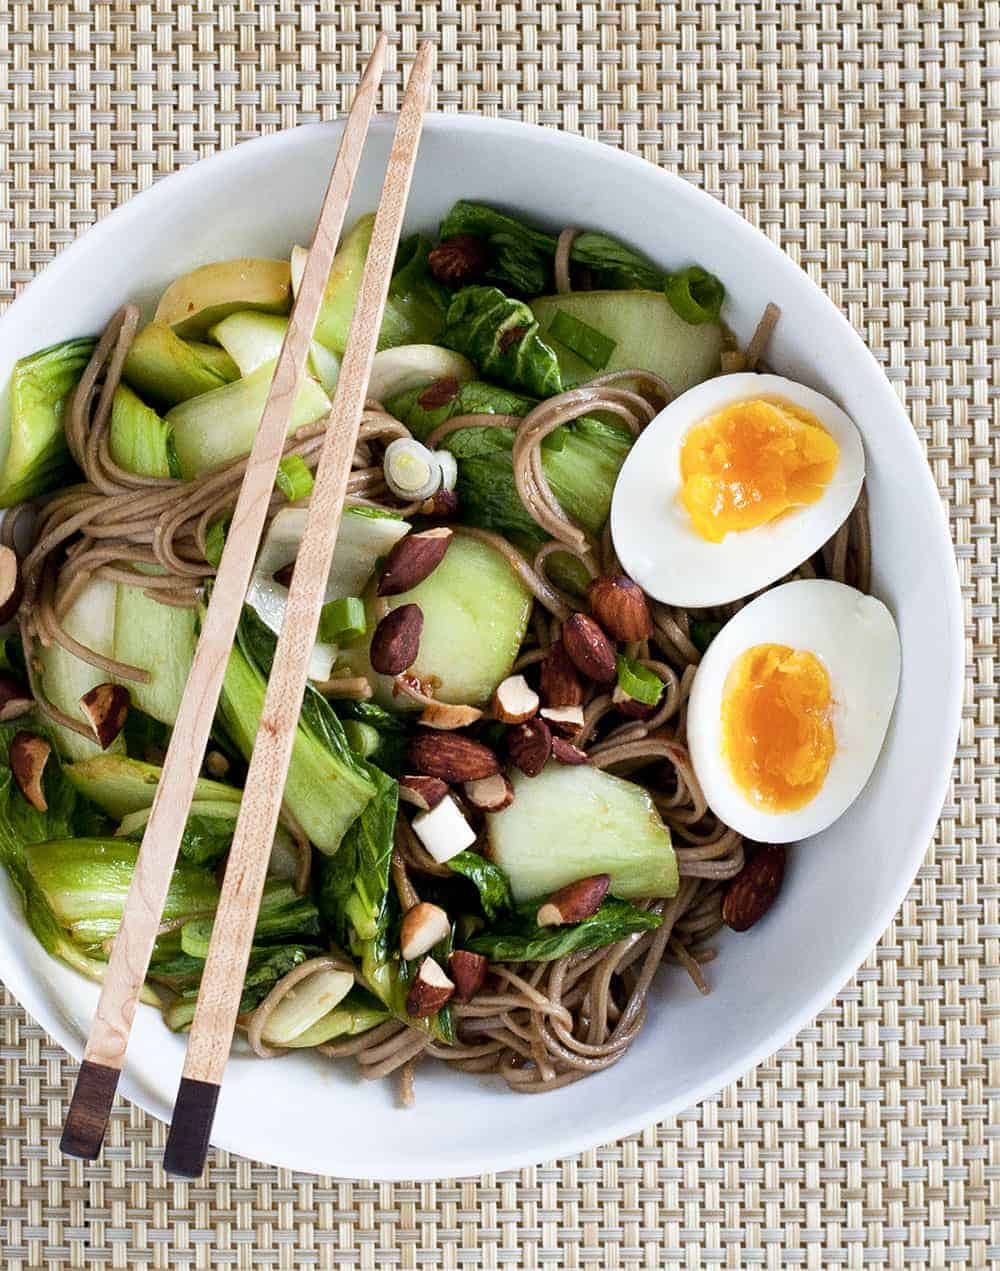 Spicy Soba Noodle Bowl with EggPinch and Swirl